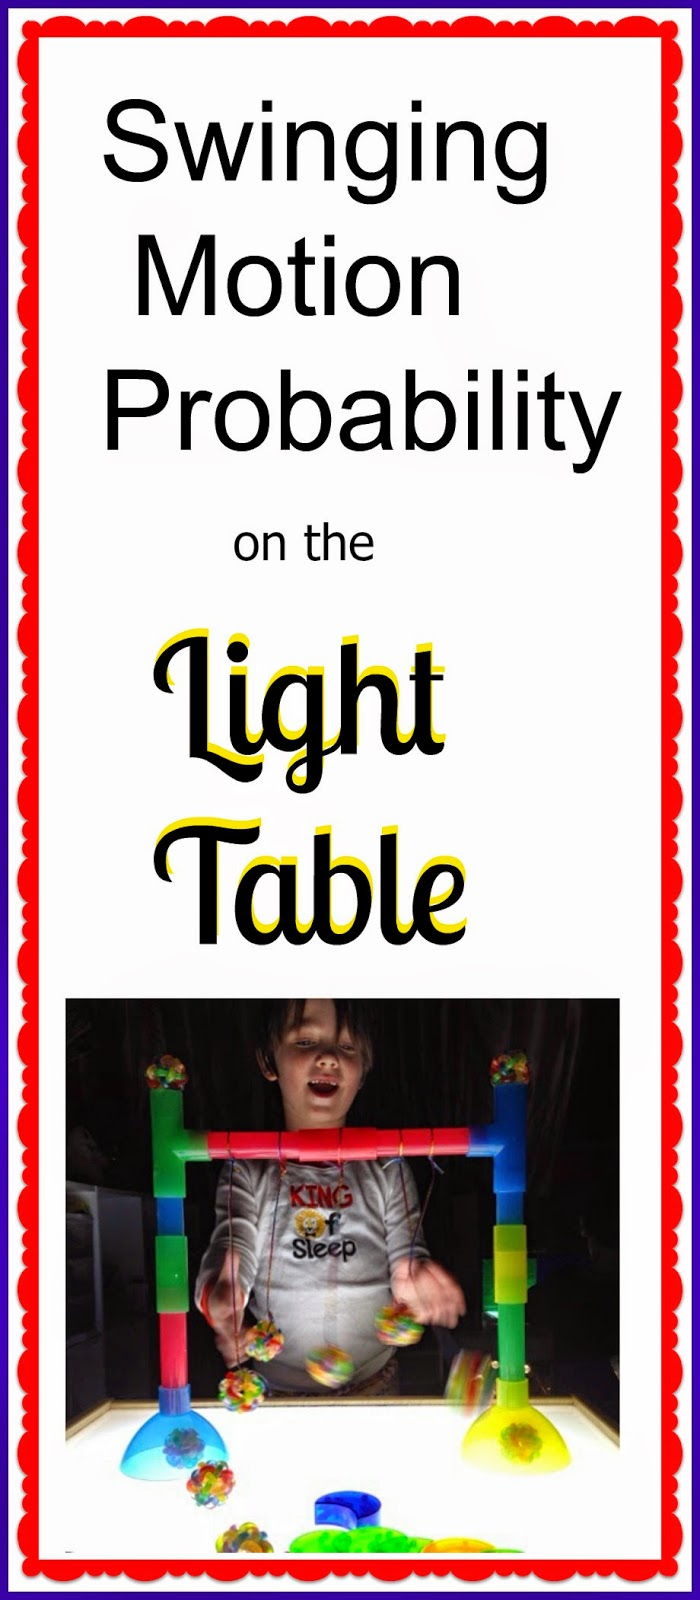 swinging motion probability on the light table